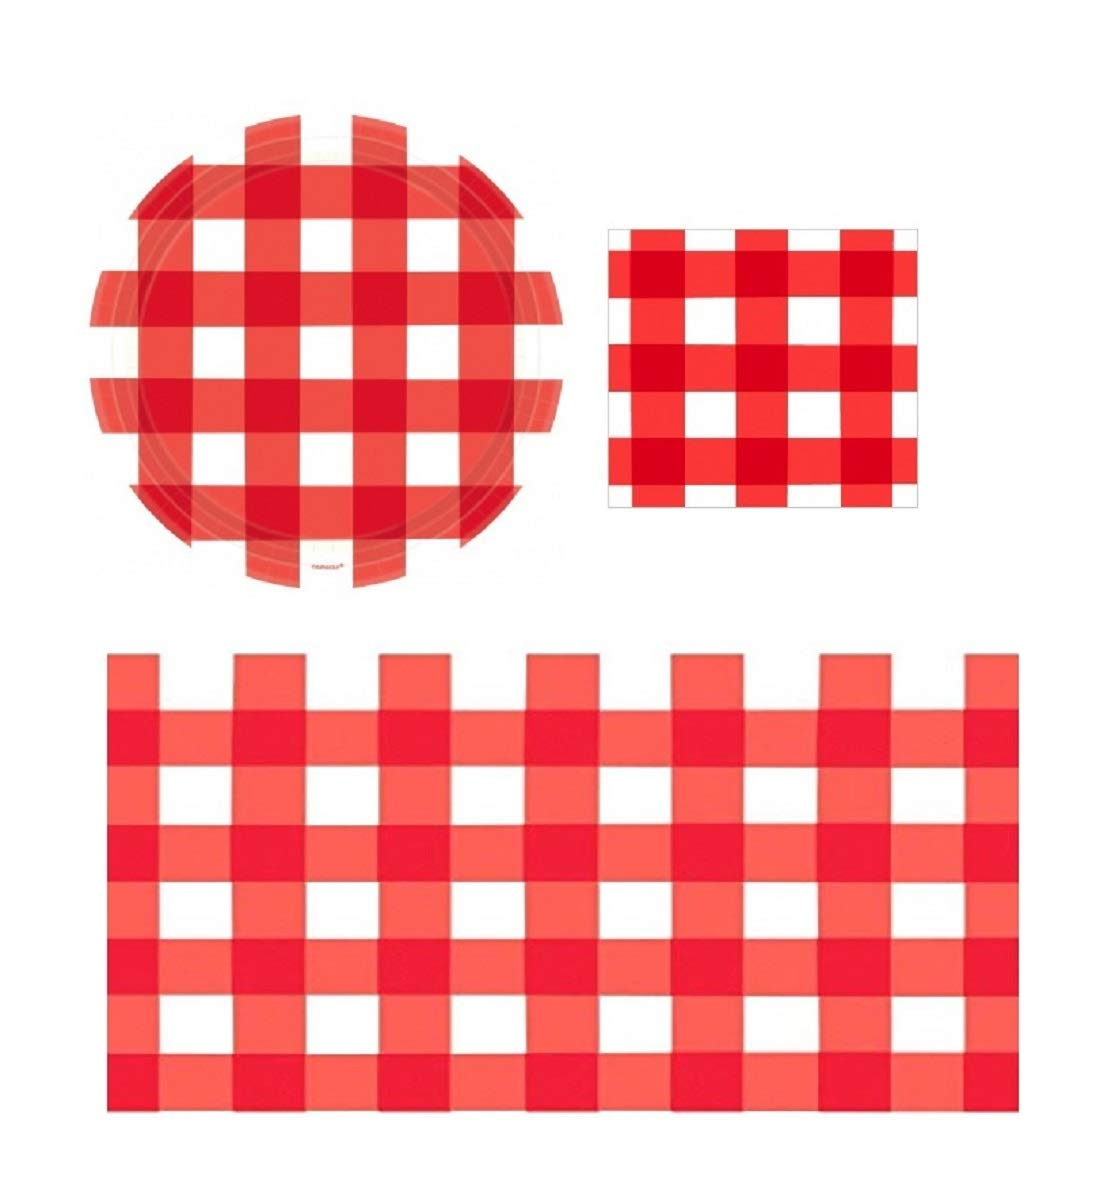 Red Gingham Party Supplies for Picnic Backyard Barbecue and Summer Events American Summer, Serve 16